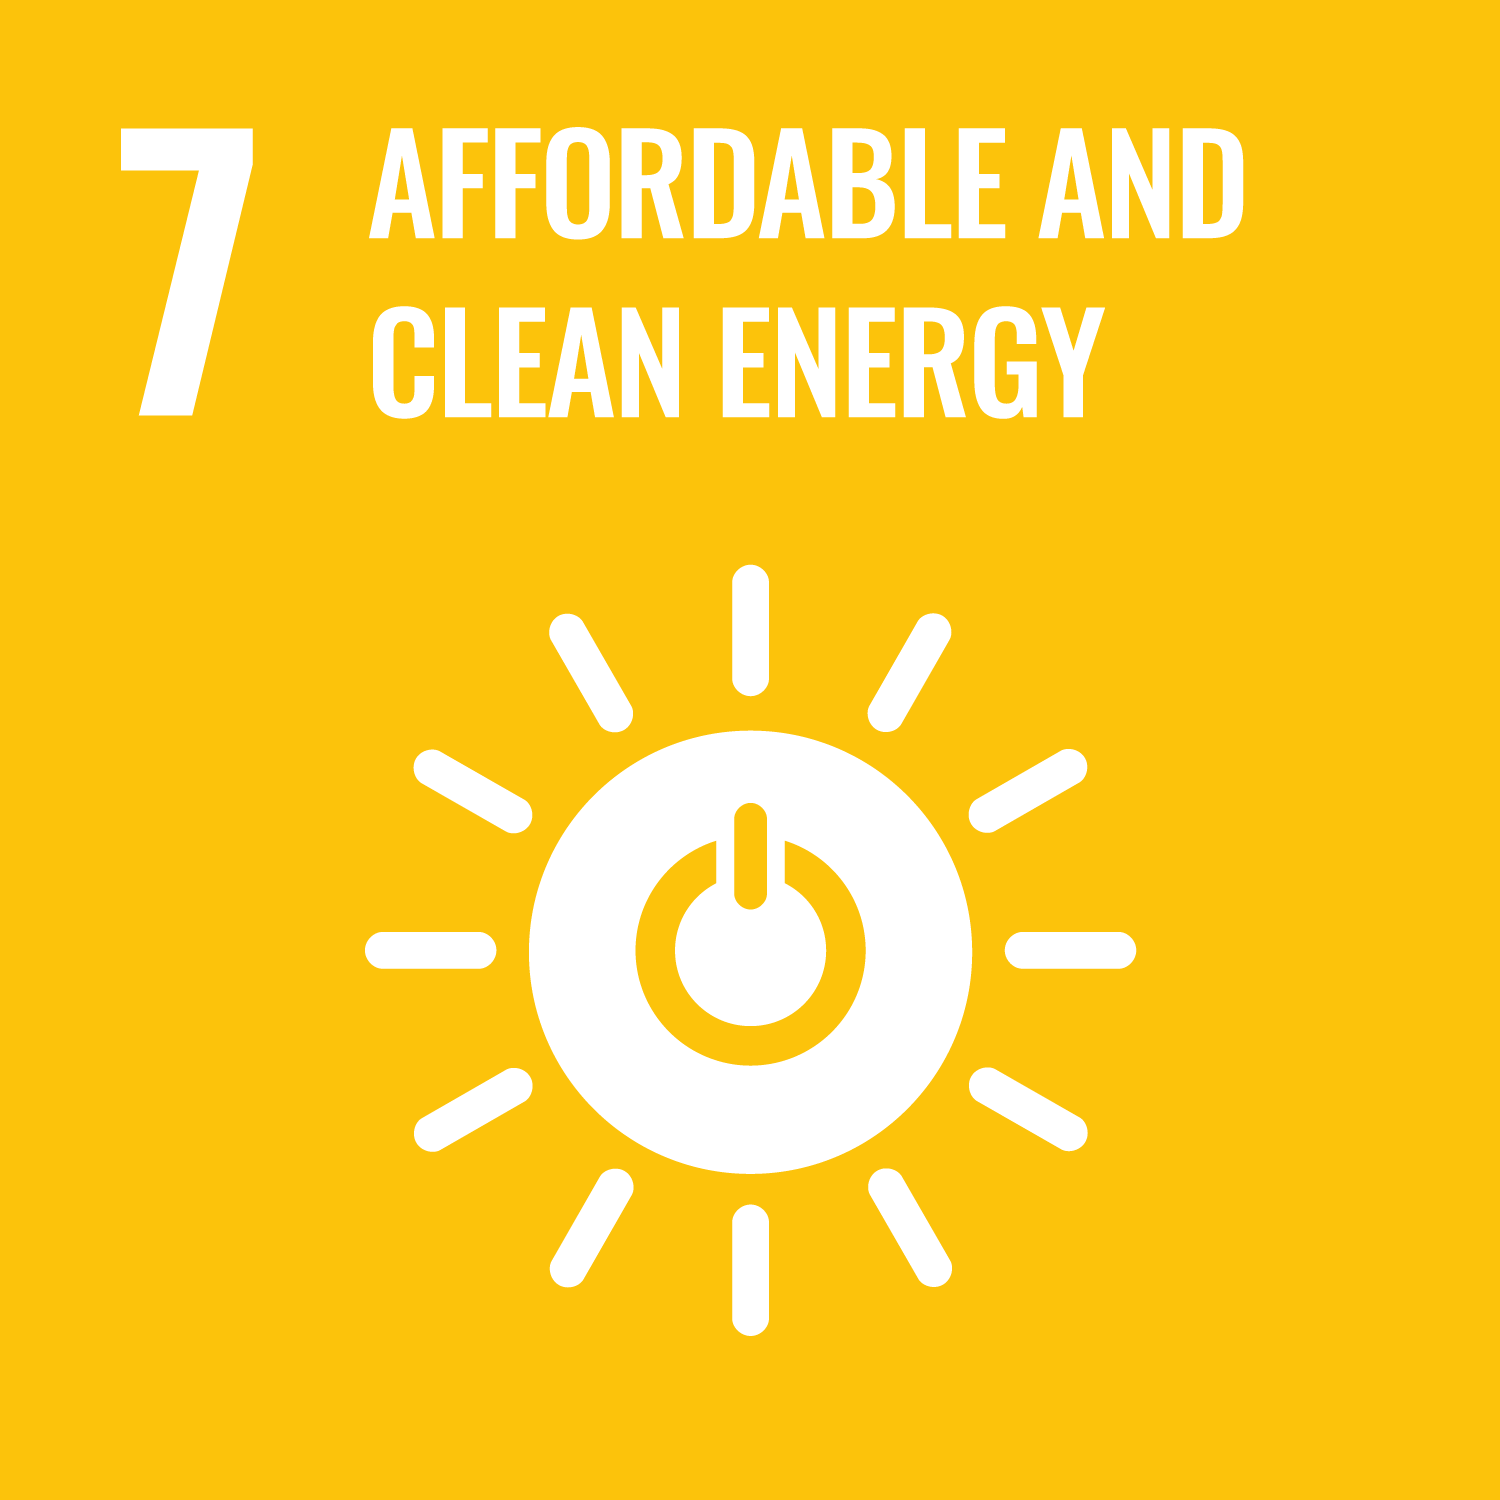 UN Sustainable goal - Clean Energy